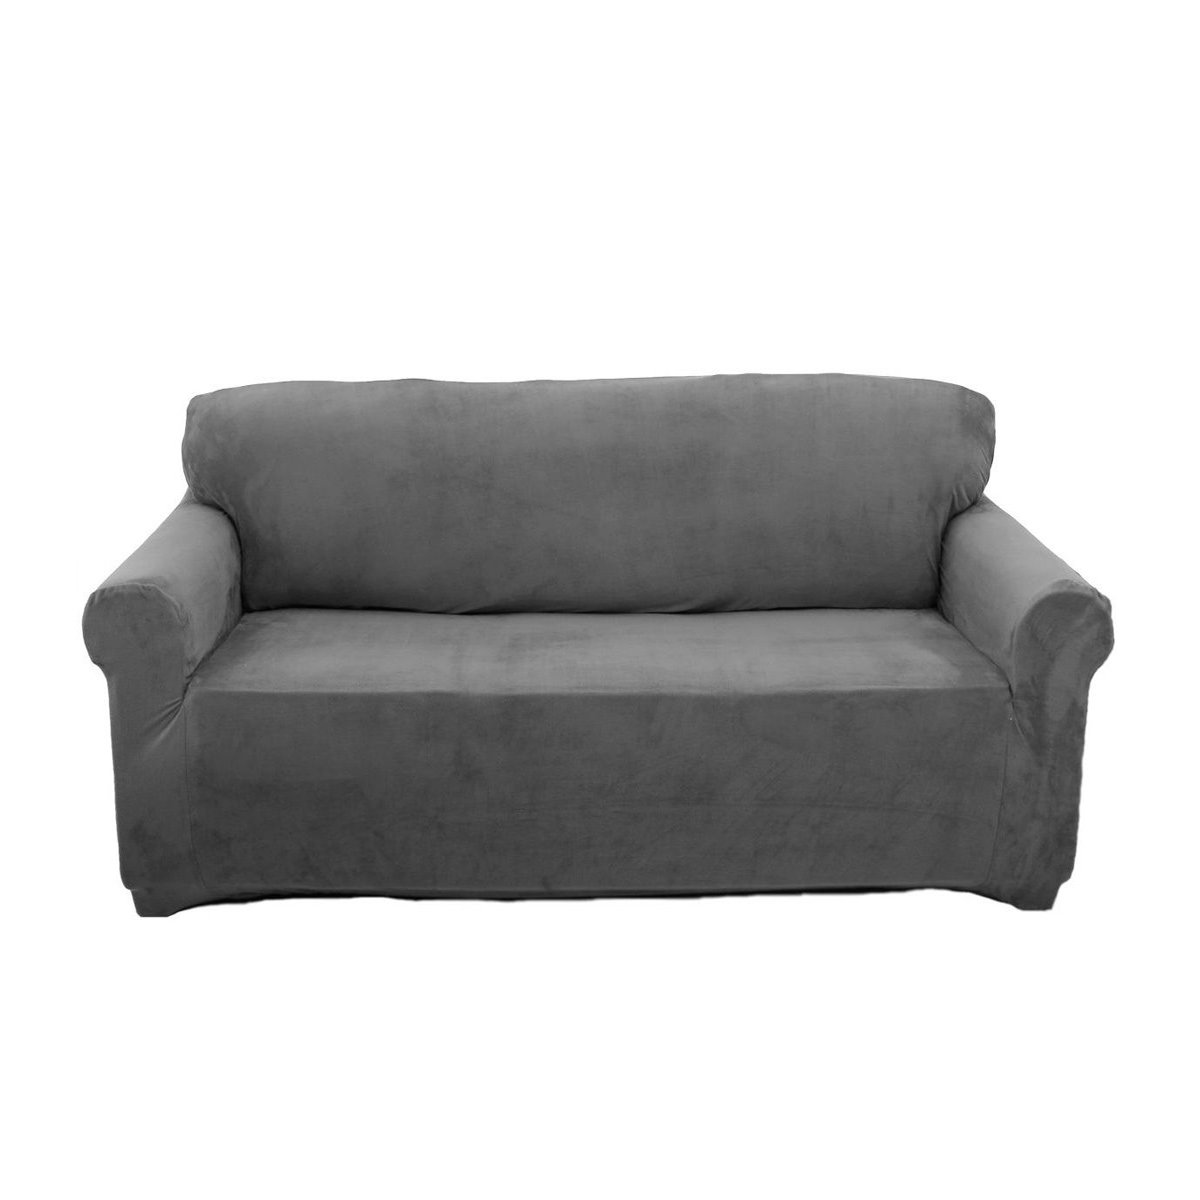 Sofa Covers Slip Over Easy Fit Elastic Fabric Couch Stretch Settee  Slipcovers Protector 2 Seater Grey: Amazon.co.uk: Kitchen U0026 Home